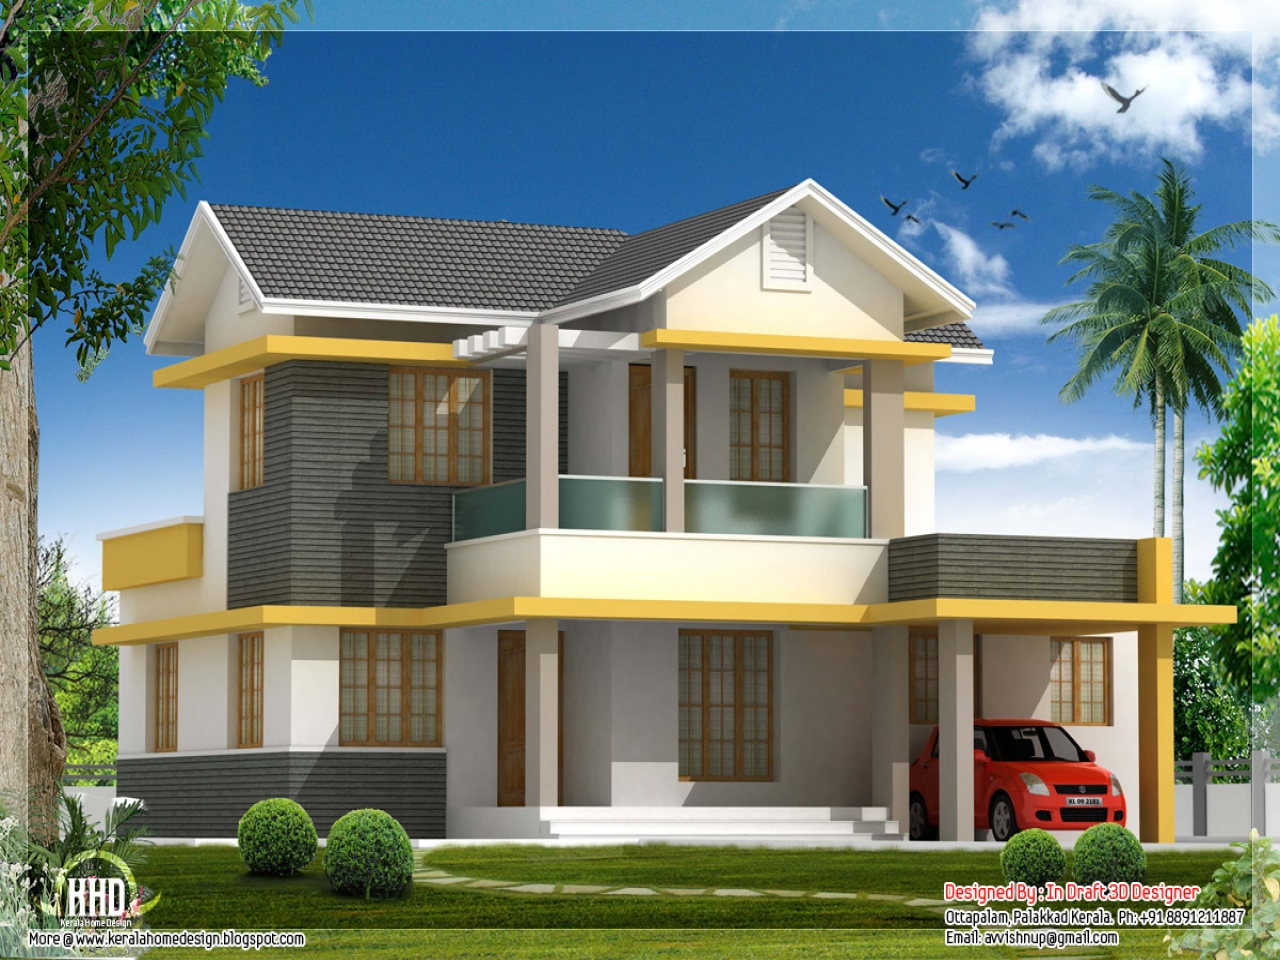 Beautiful house designs kerala style beautiful house for Attractive house designs